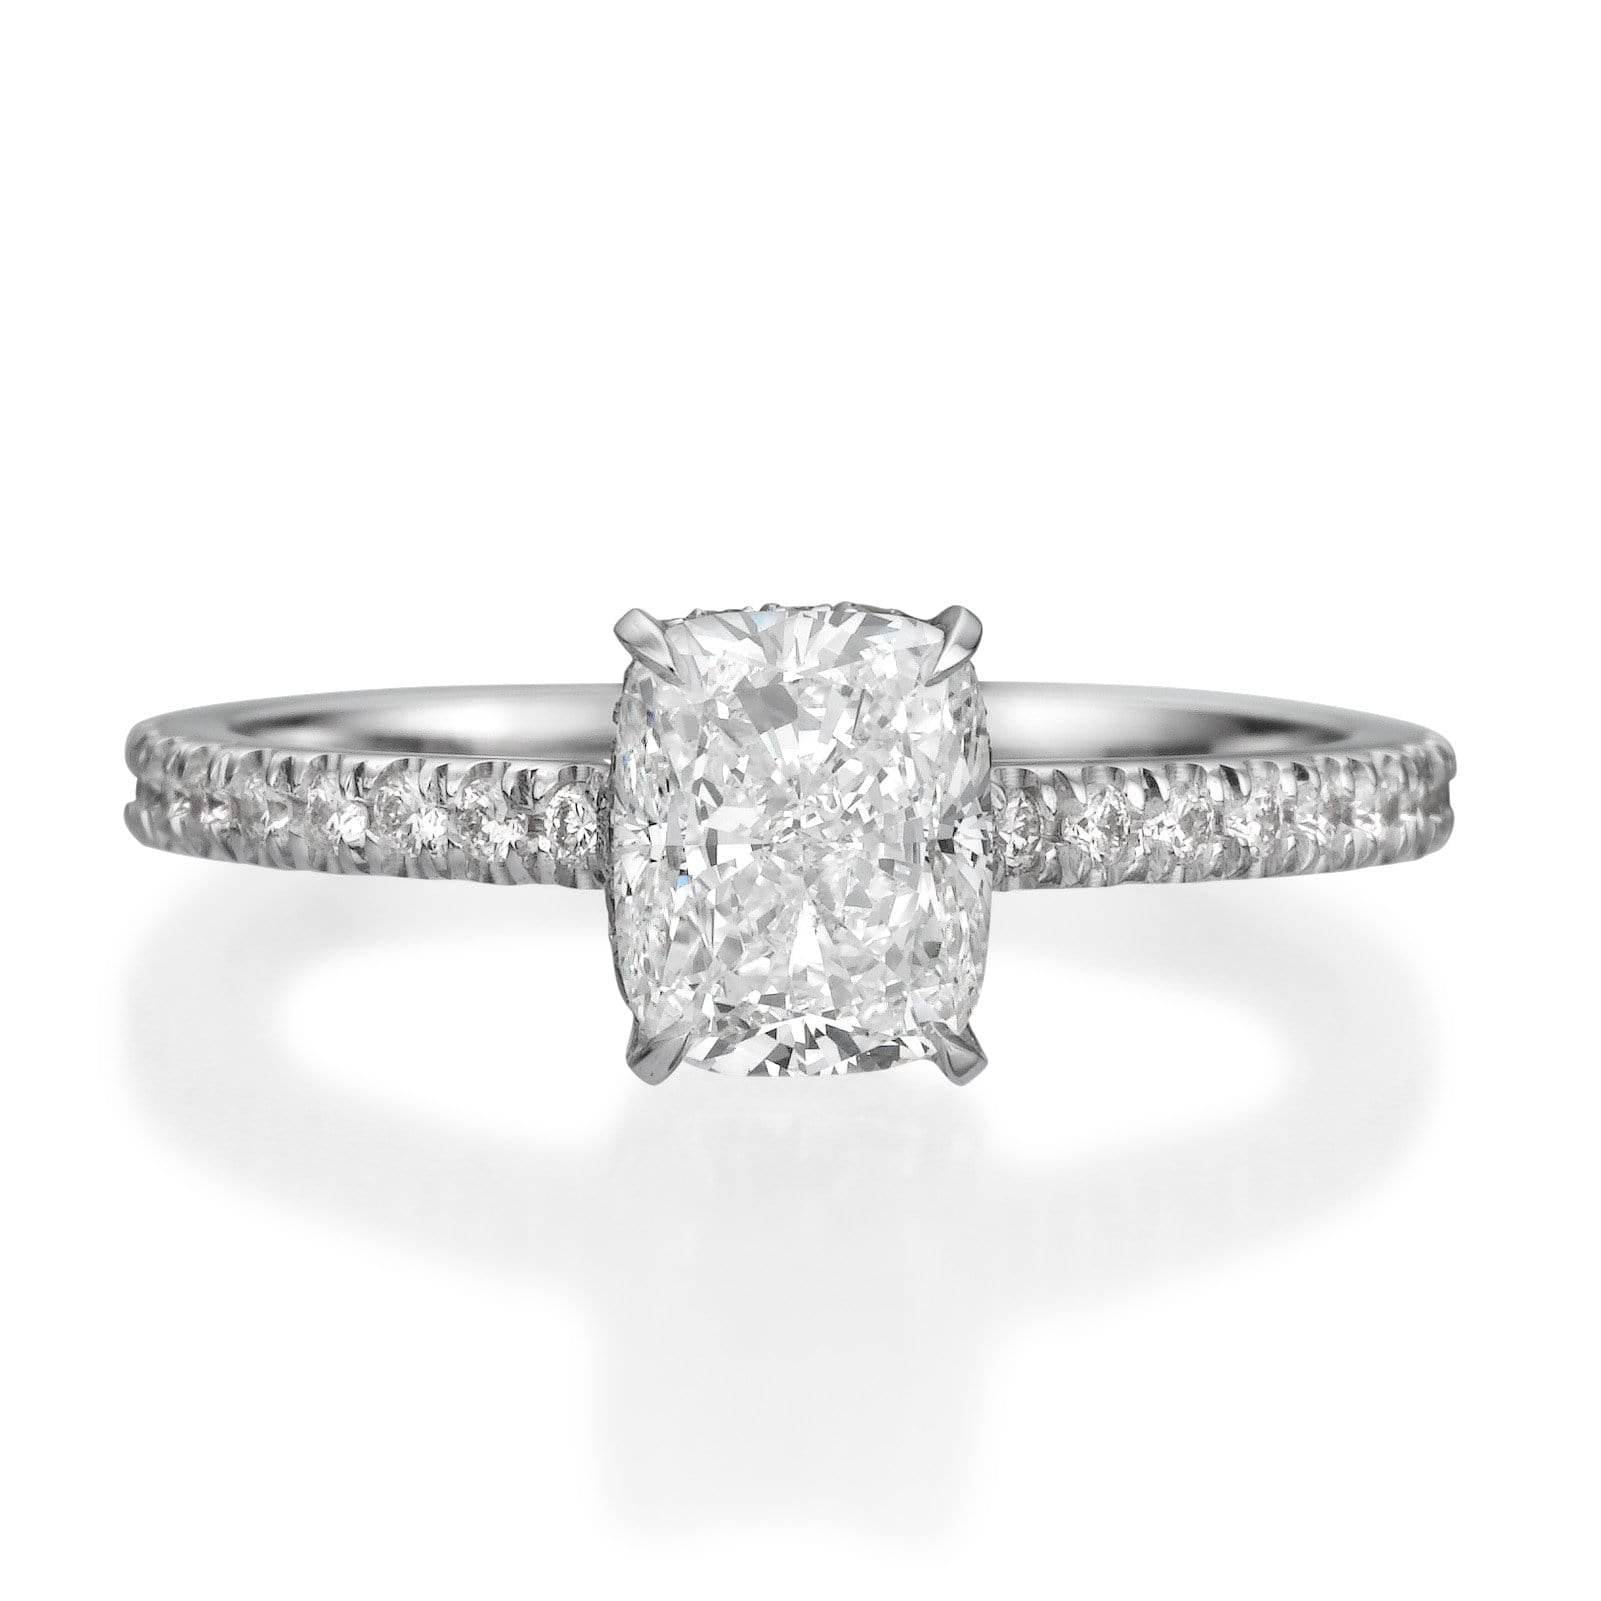 2.15 ct Cushion Cut Diamond Engagement Ring